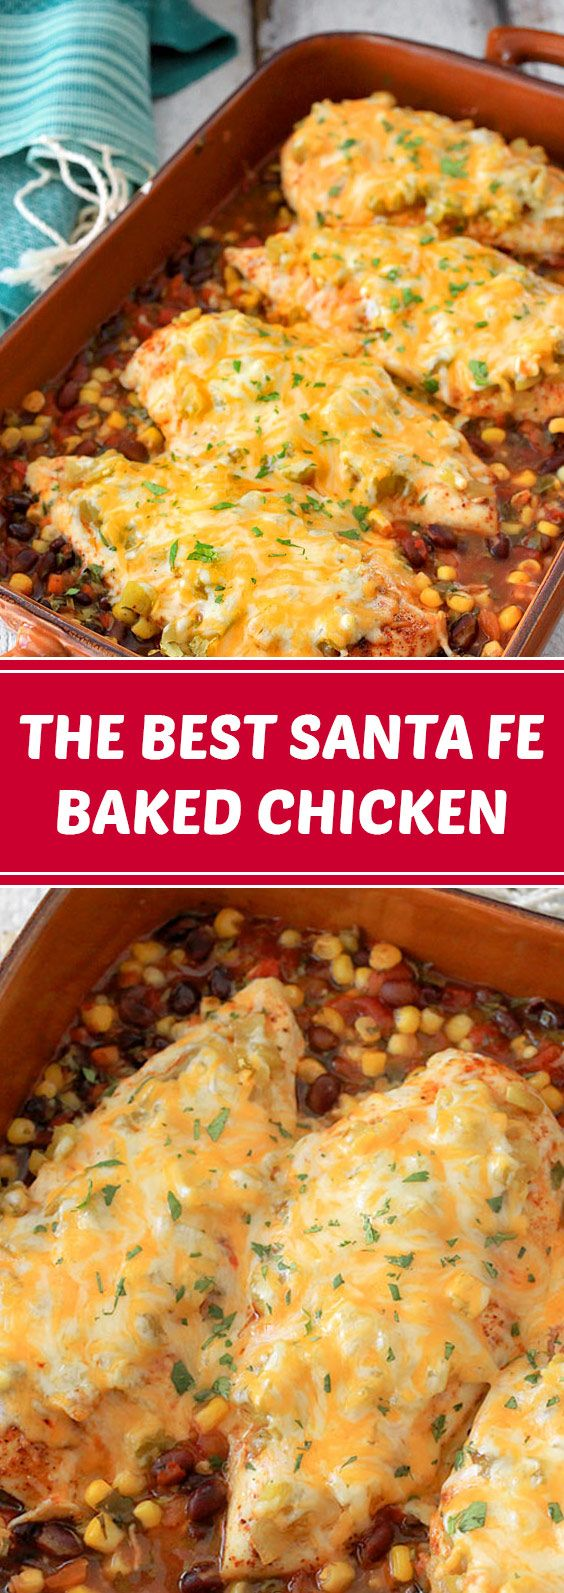 The Best Santa Fe Baked Chicken | This Santa Fe baked chicken recipe is easy to make, done in one dish and prepped in 15 minutes! #baked #chicken #dinner | deliciousrecipes.me #dinnerrecipesforfamilymaindishes